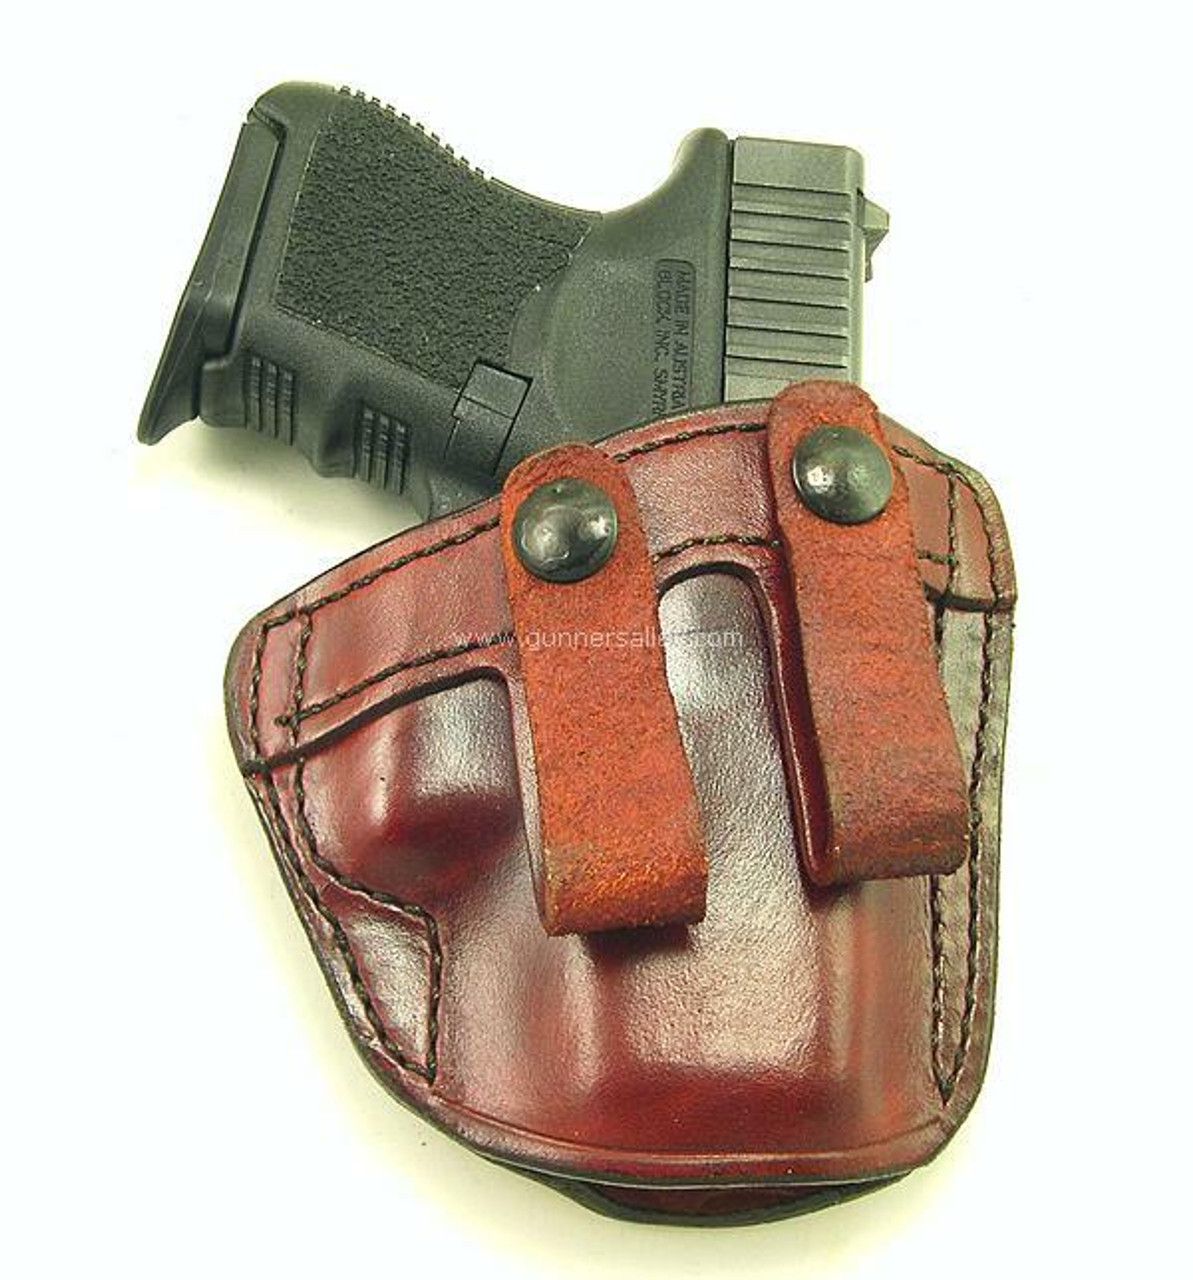 Front View - Shown with a Glock 26 model for Demonstration Purposes